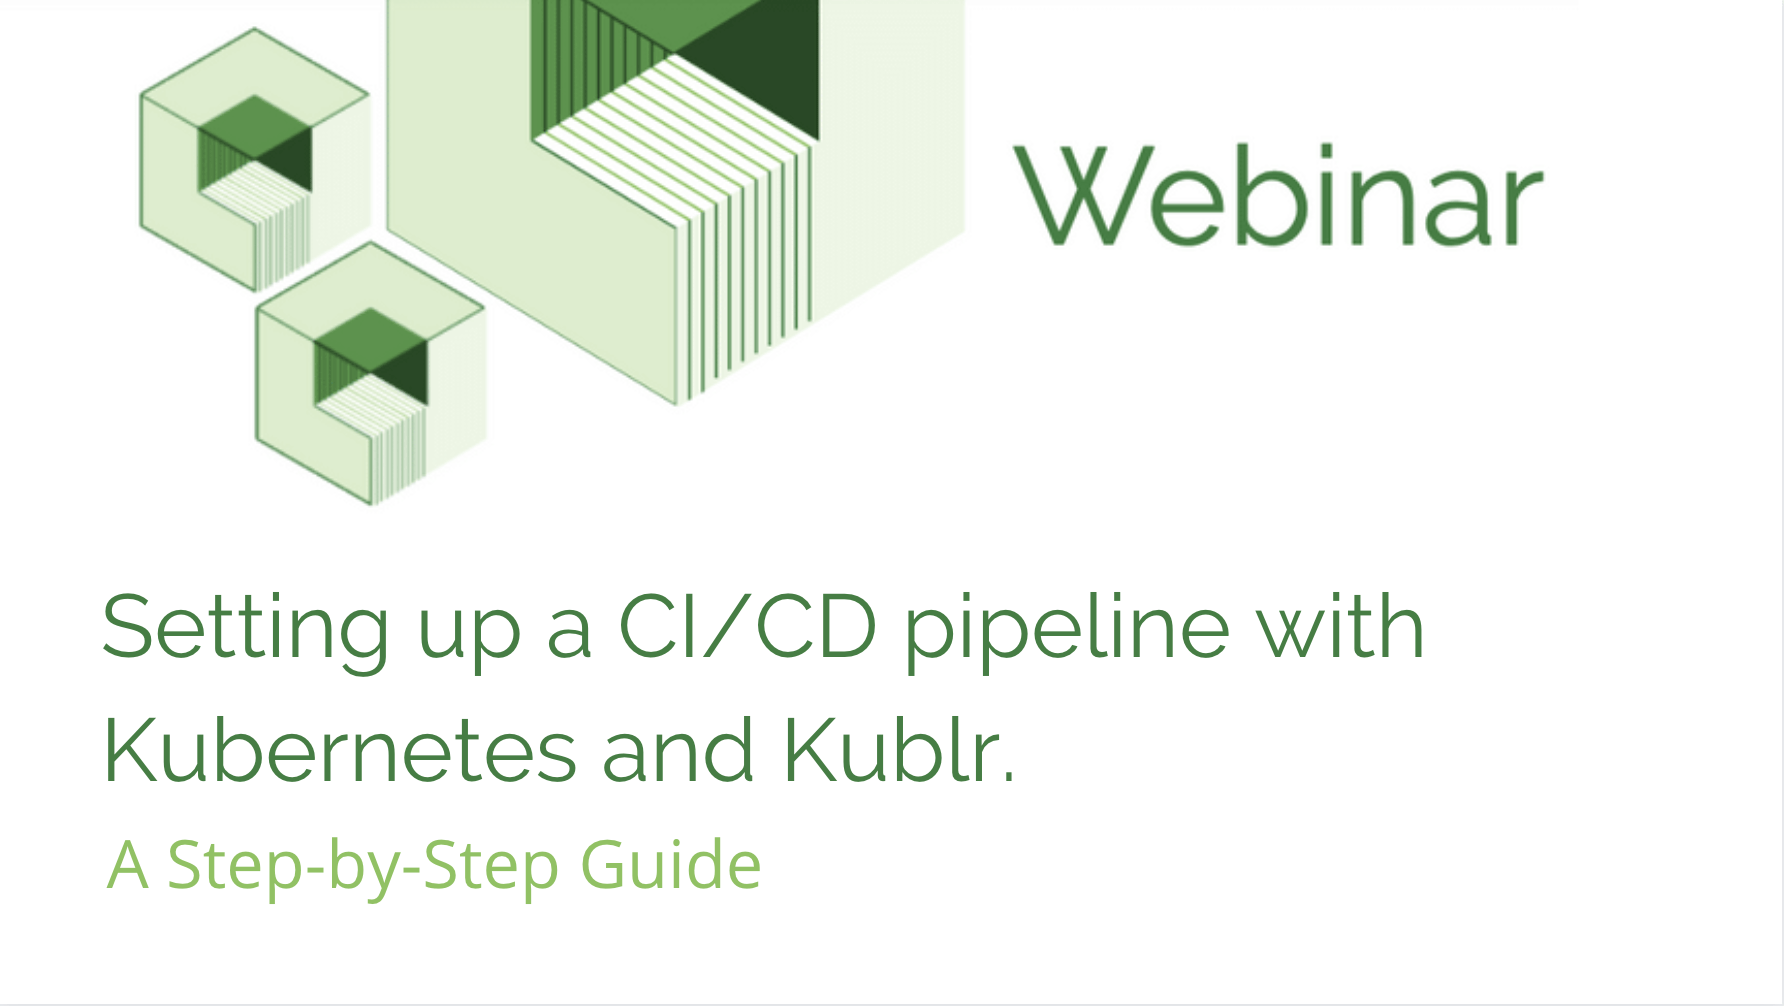 Setting up a CI/CD pipeline with Kubernetes and Kublr | A Step-by-Step Guide